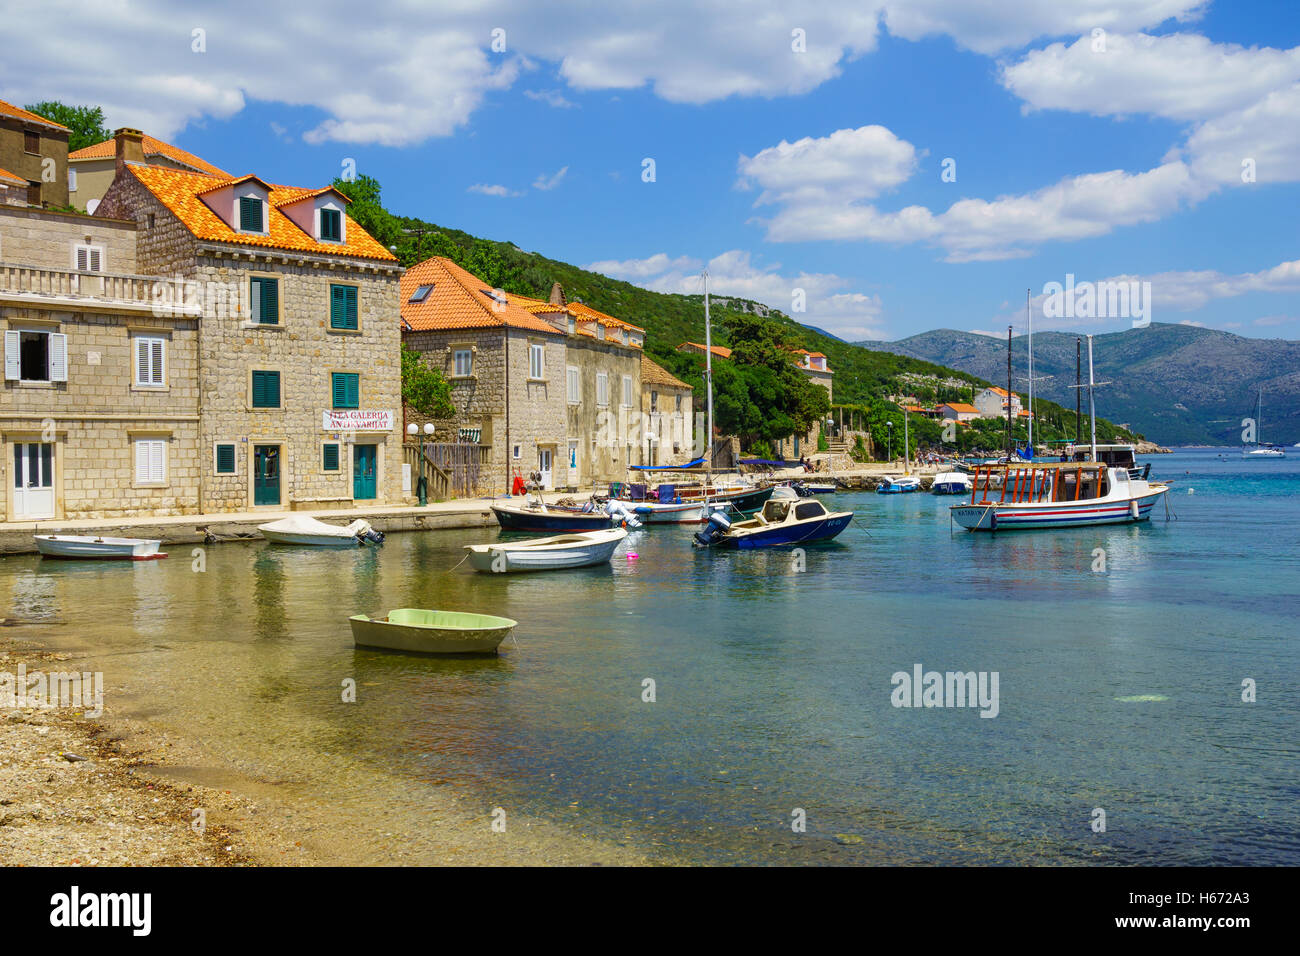 SUDURAD, CROATIA - JUNE 27, 2015: Scene of the fishing port, with boats, locals and tourists, in the village Sudurad, - Stock Image